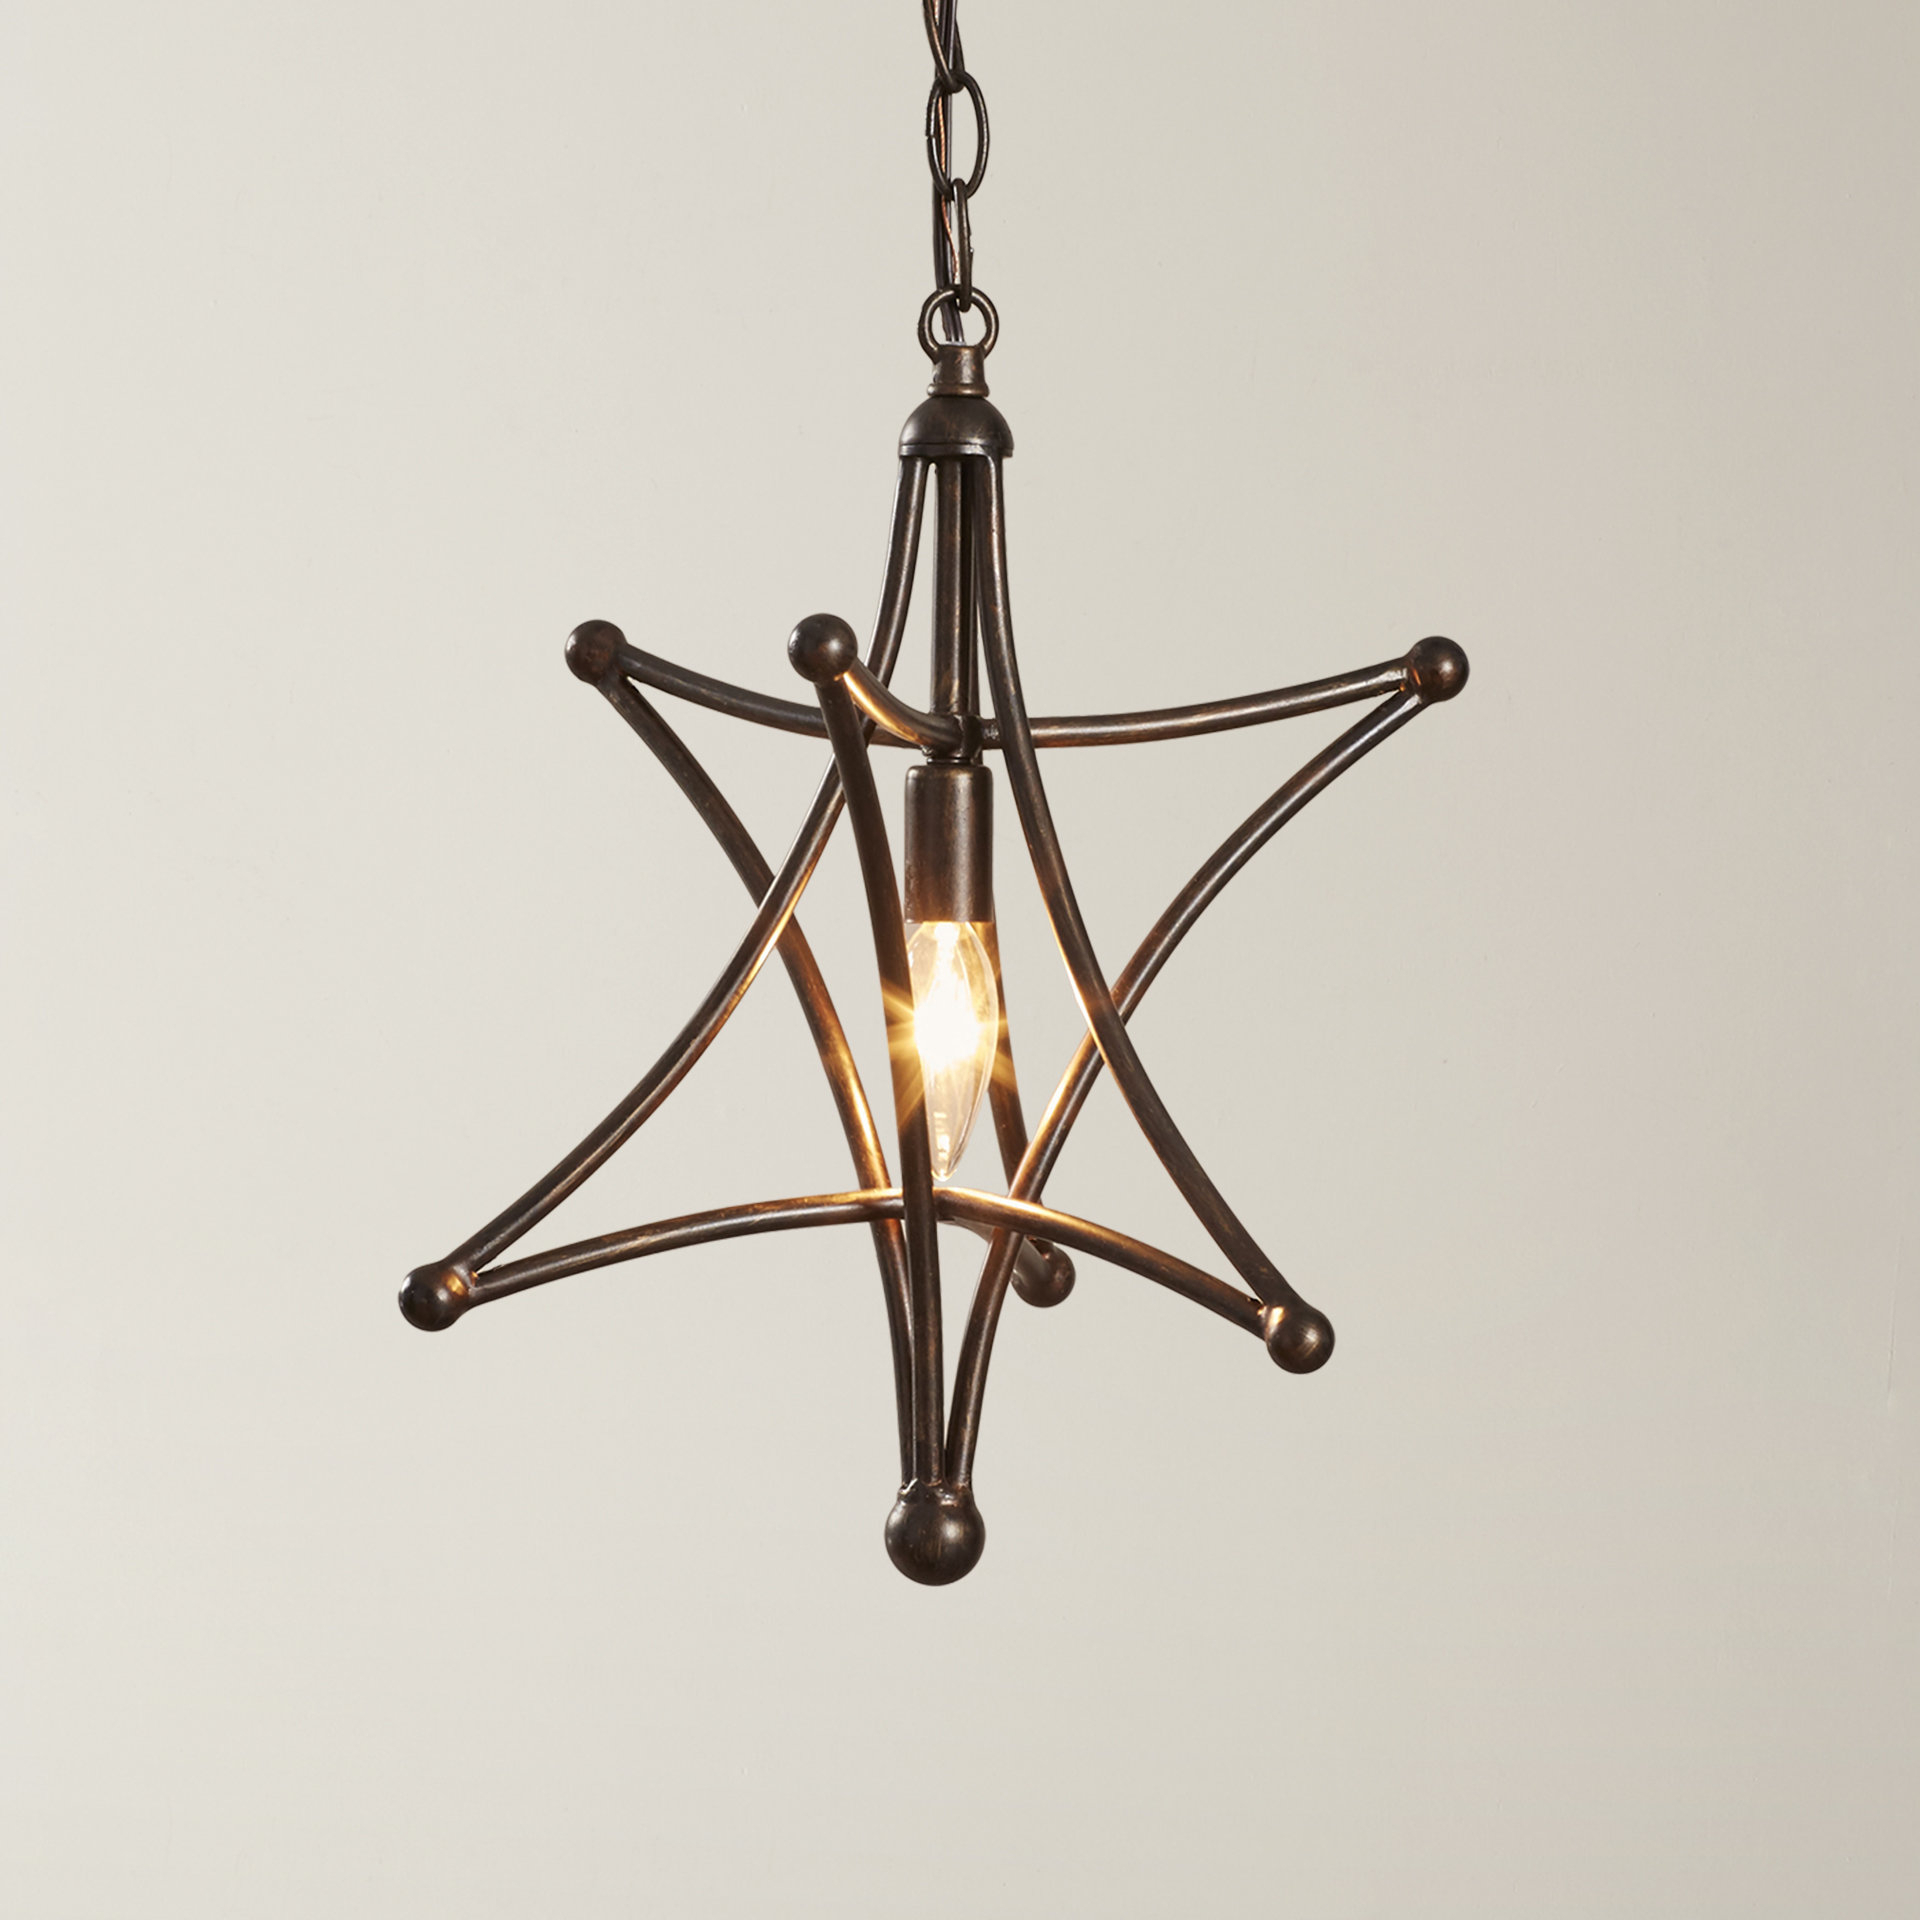 Van Horne 3 Light Single Teardrop Pendants In Most Recent Cynthia 1 Light Geometric Pendant (View 21 of 25)